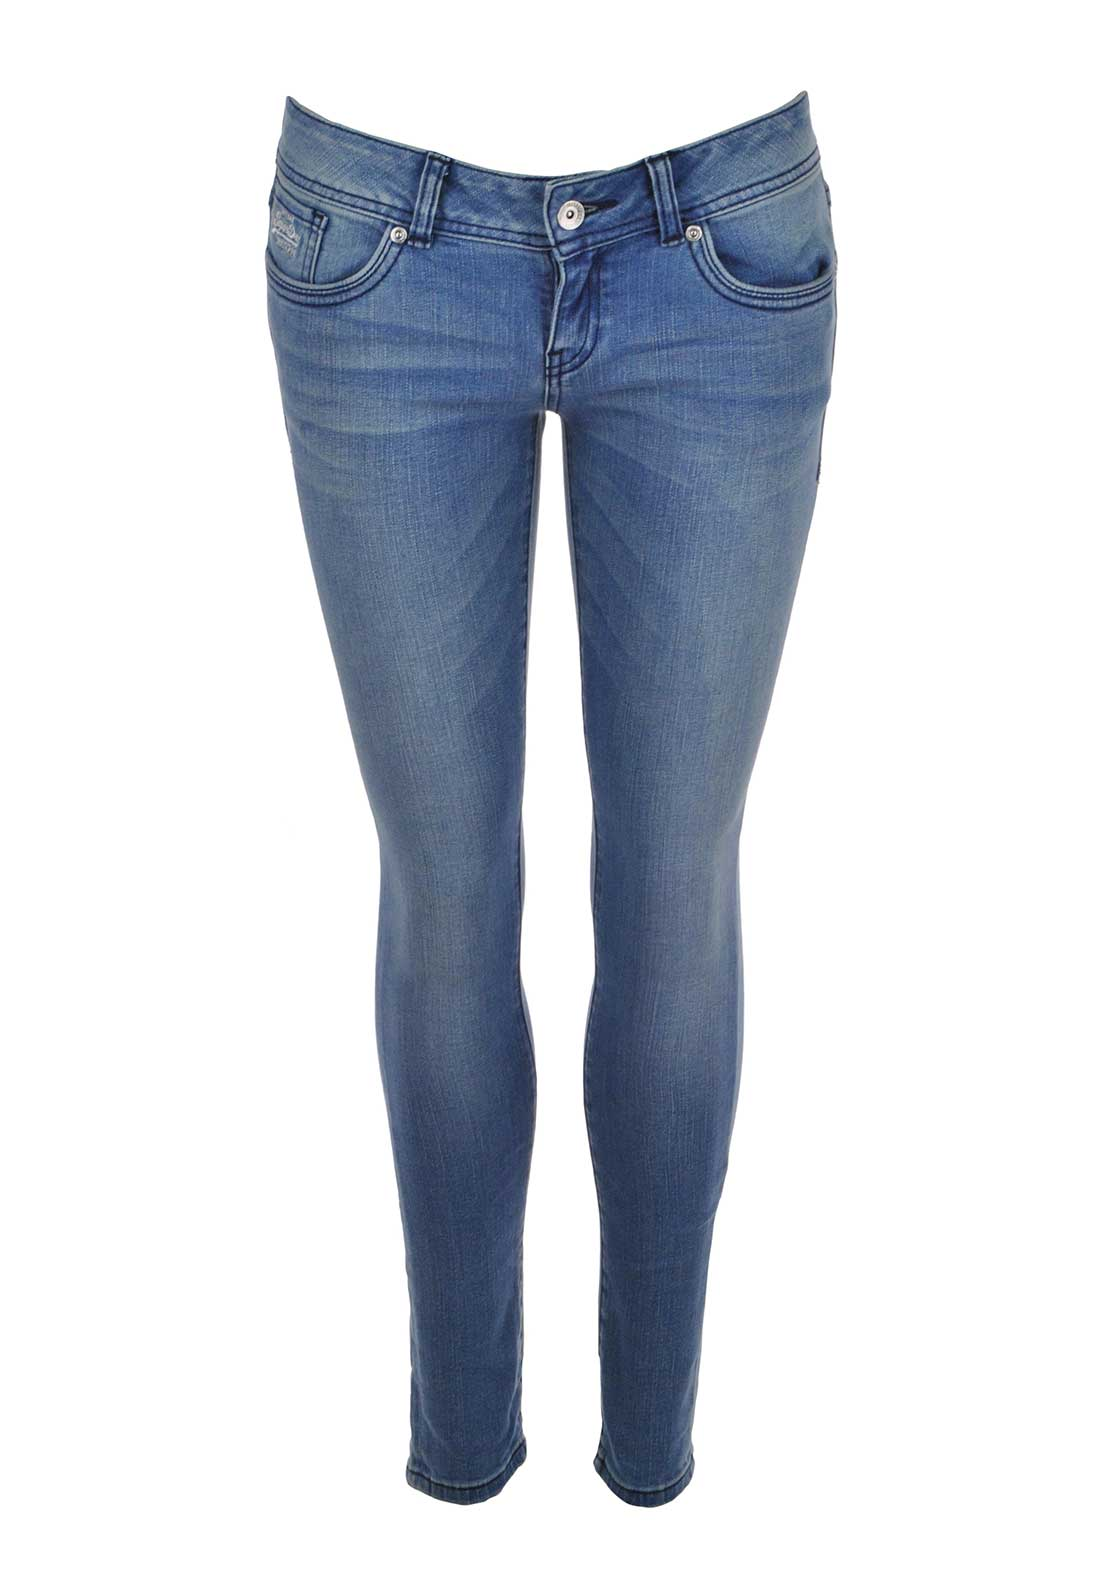 Superdry Womens Low Rise Super Skinny Jeans, Sapphire Blue